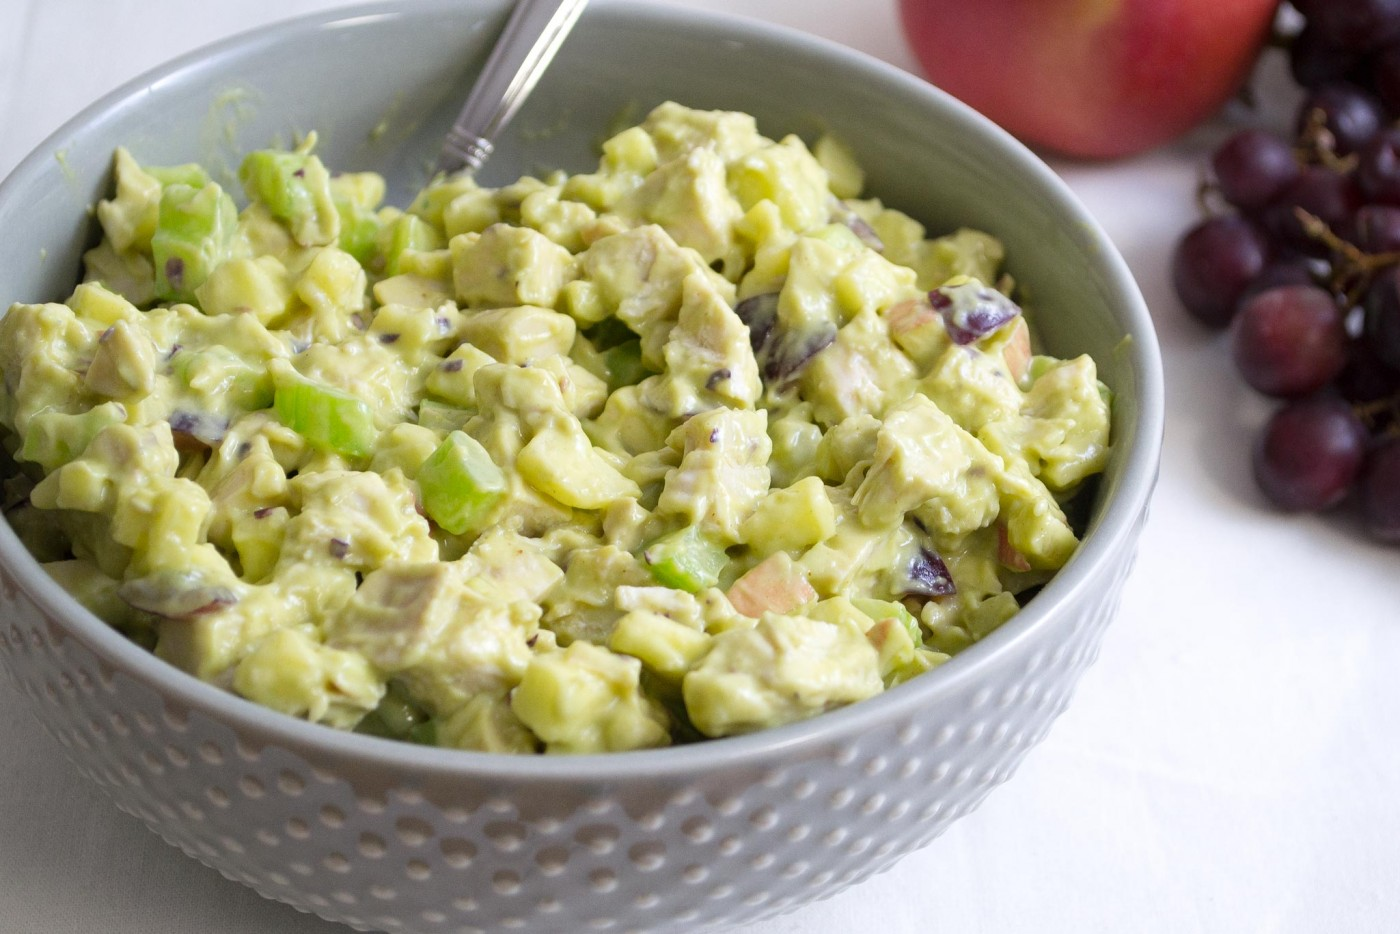 Waldorf-Inspired Avocado Chicken Salad Recipe (Mayonnaise Free)